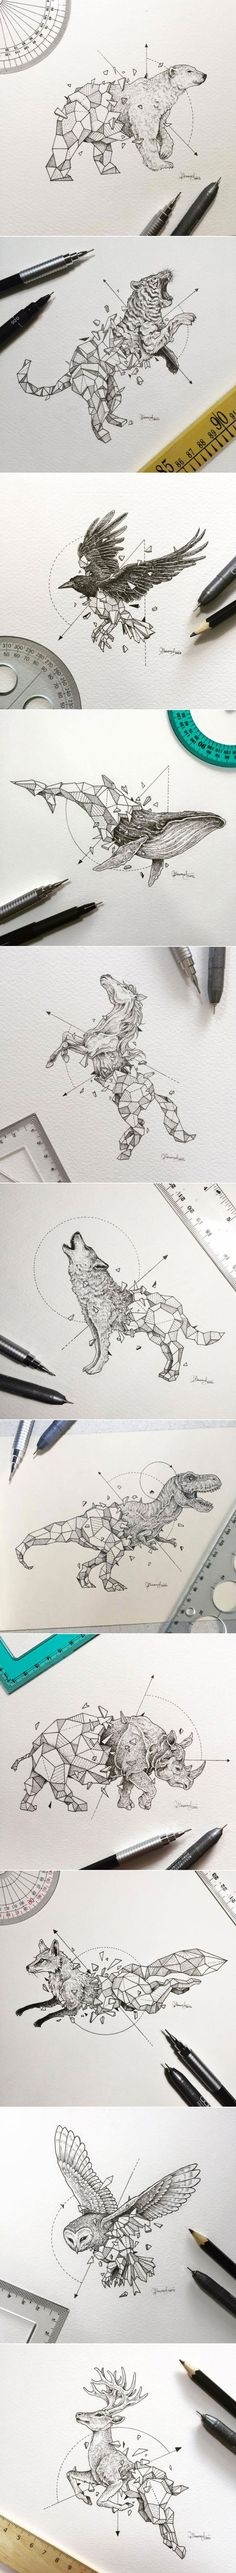 Geometric animal tatoo design by Kerby Rosanes Animal Sketches, Animal Drawings, Cool Drawings, Body Art Tattoos, Cool Tattoos, Tatoos, Neck Tattoos, Petit Tattoo, Geniale Tattoos